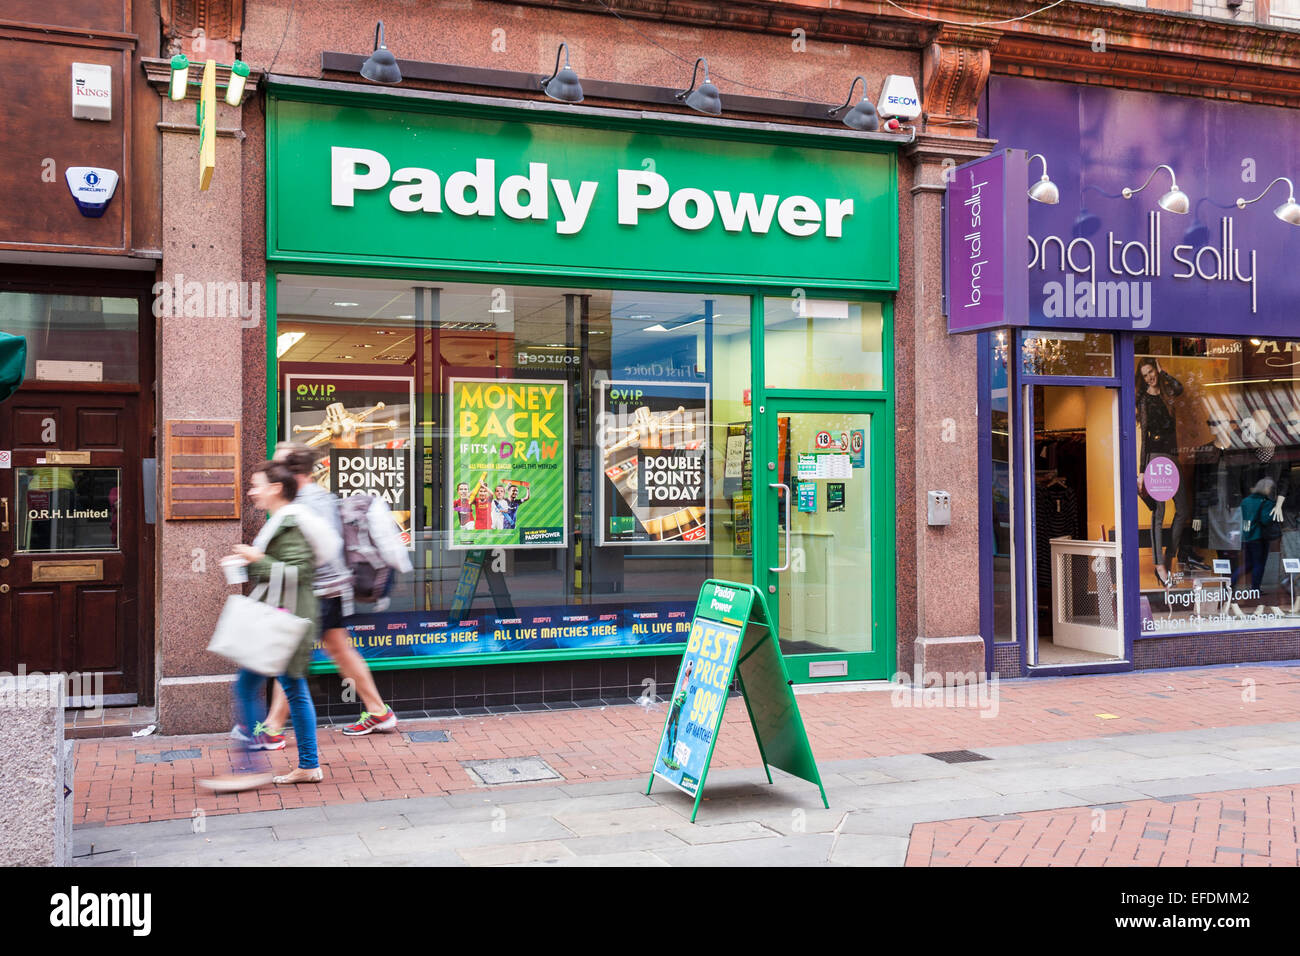 Paddy Power bookmakers shop. - Stock Image